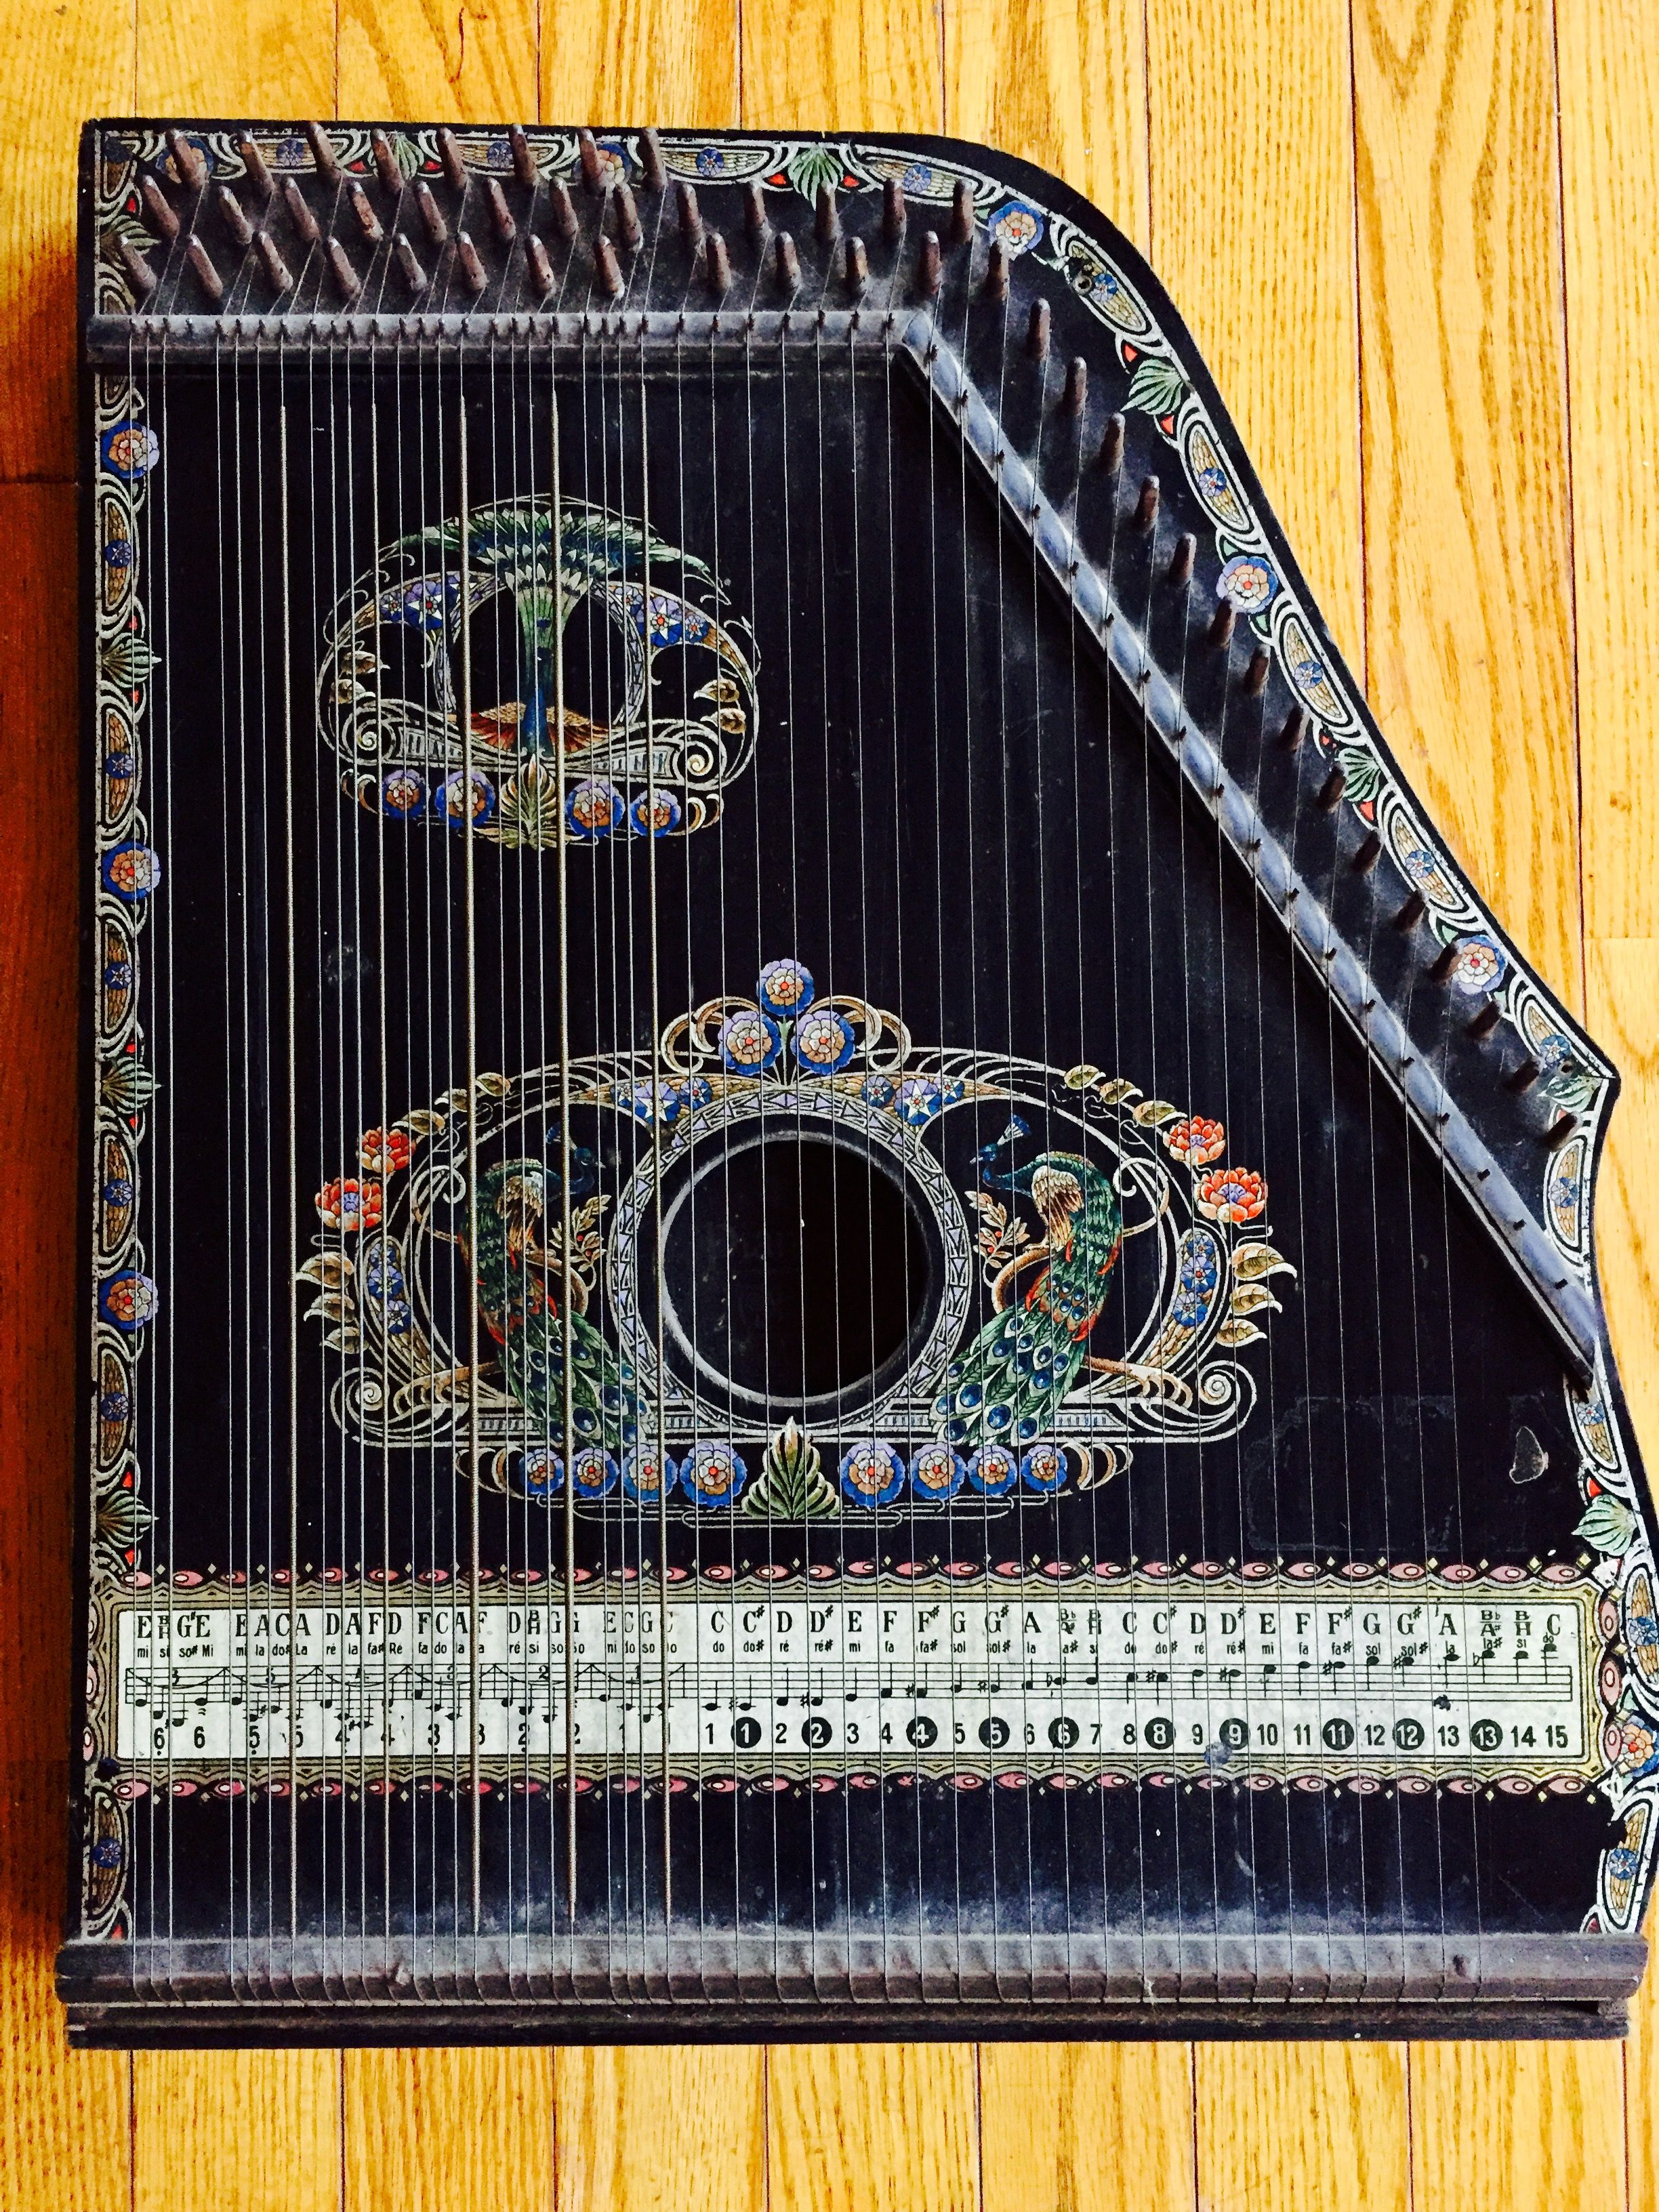 The Piano Chord Guitar Zither Menzenhauer No 3 12 C The